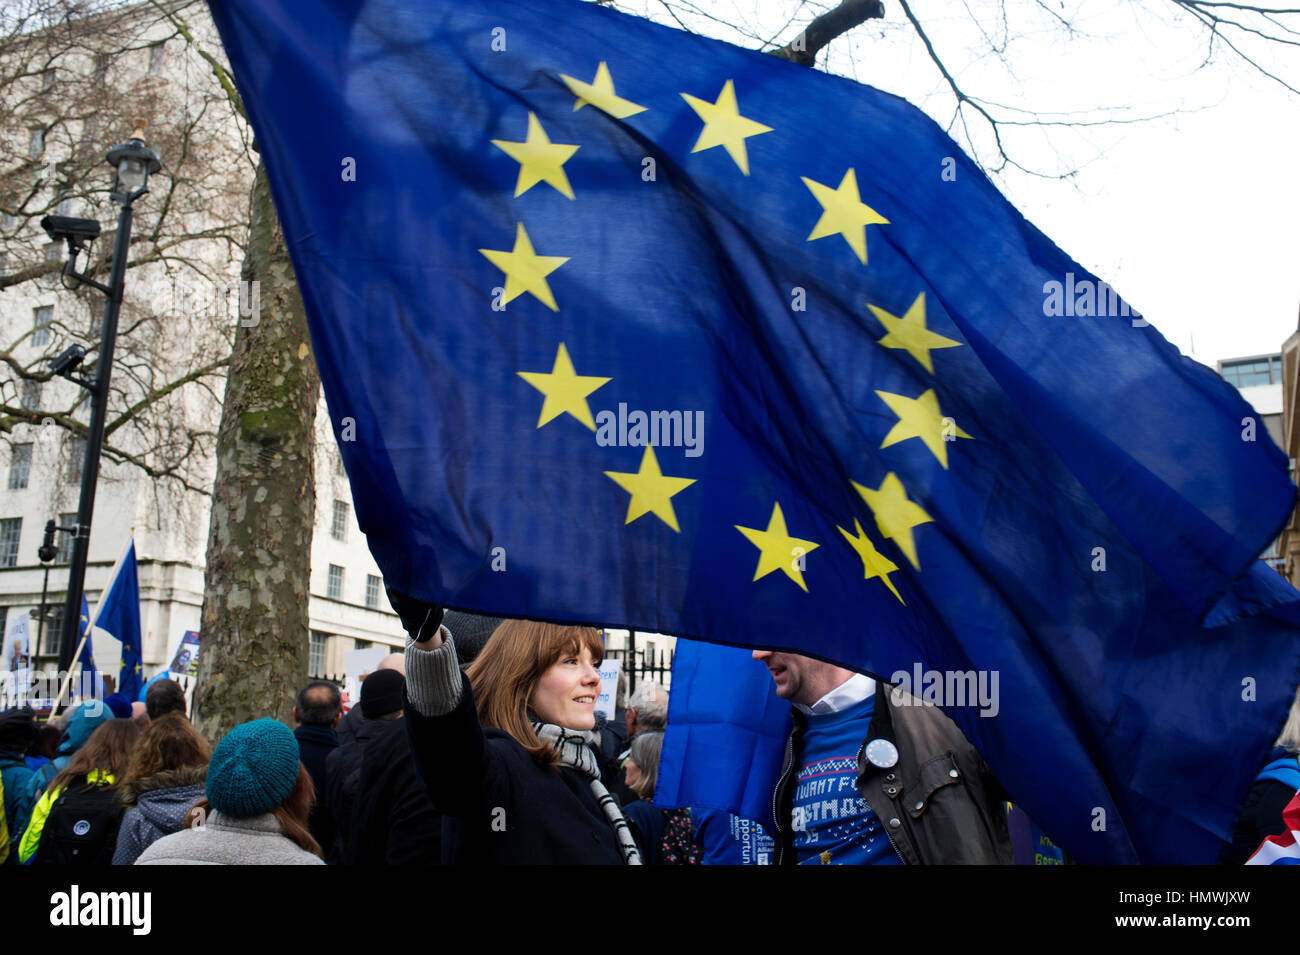 February 4th 2017. A small demonstration opposite Downing Street by supporters of Remain (in the European Union) - Stock Image